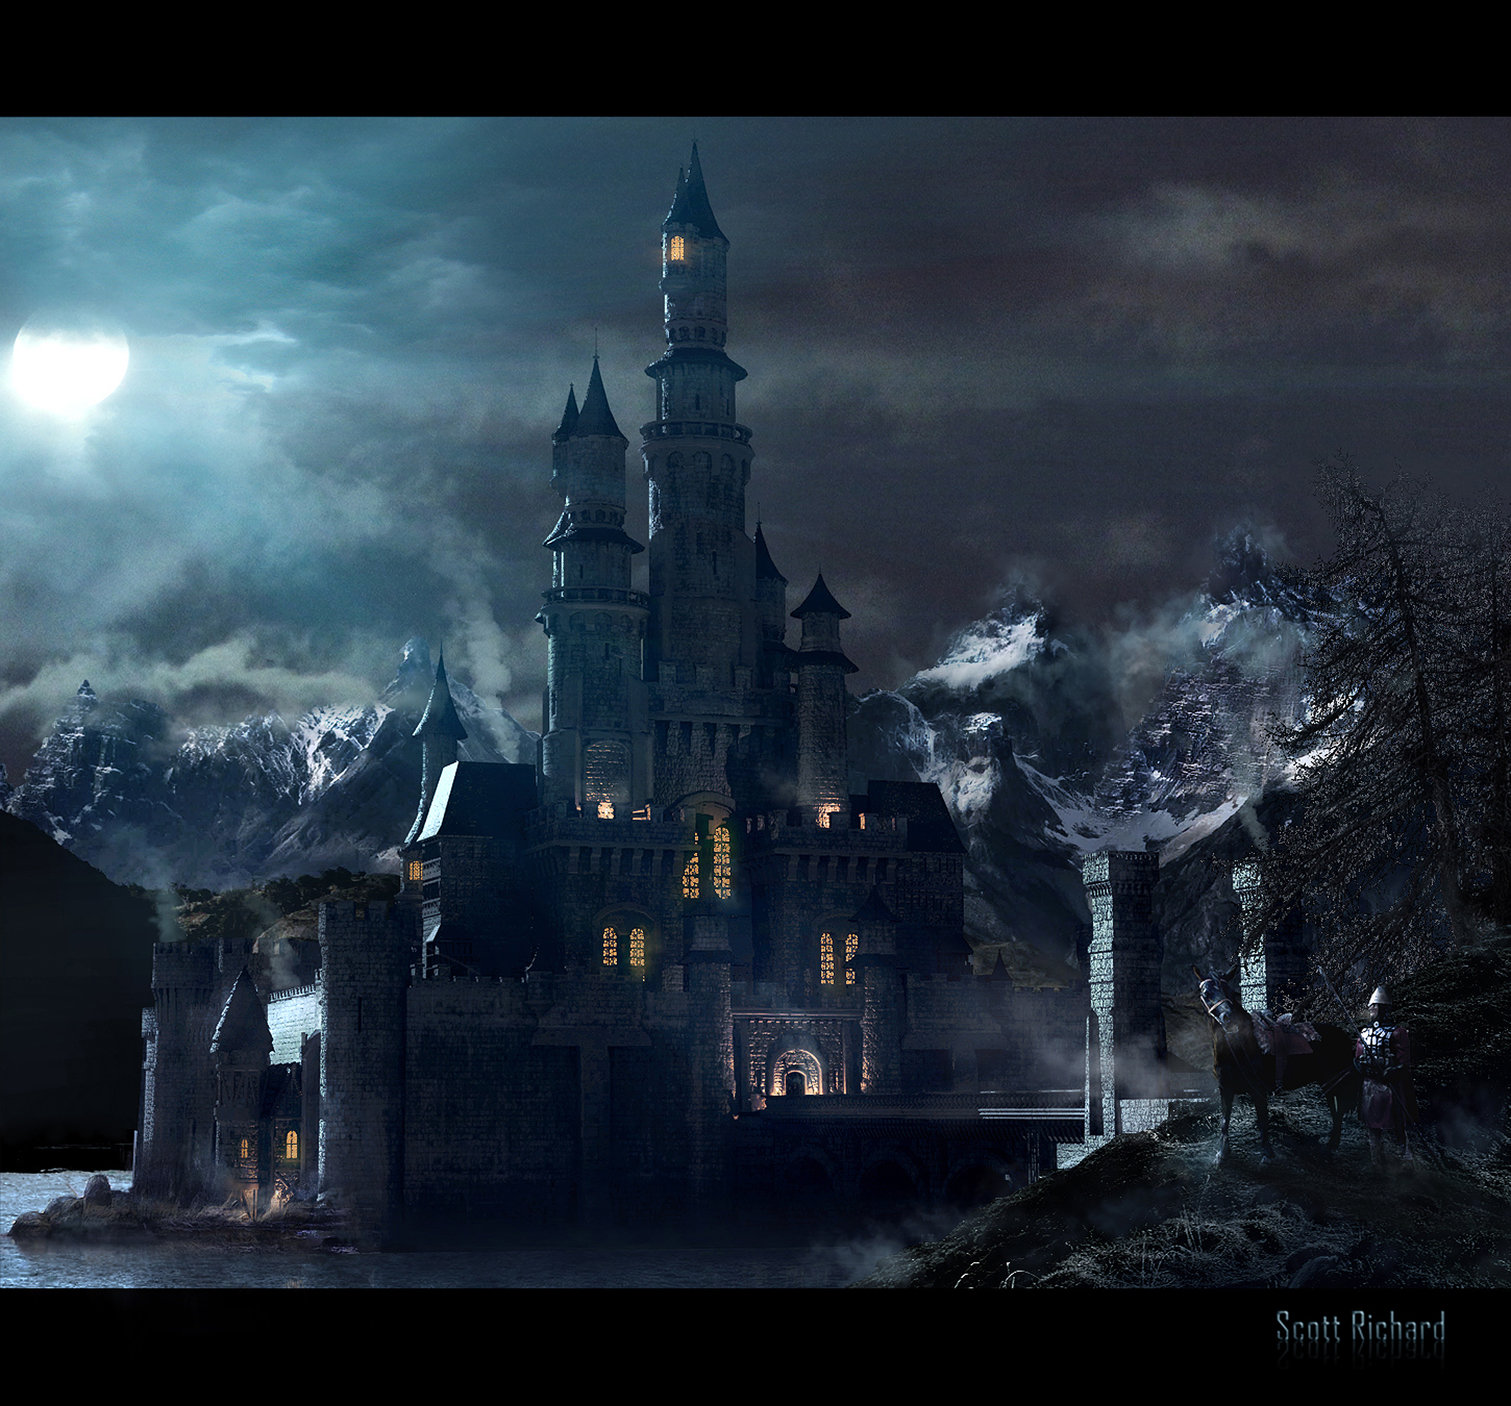 Scott richard tlg moonlight castle matte by rich35211 d6f05wc